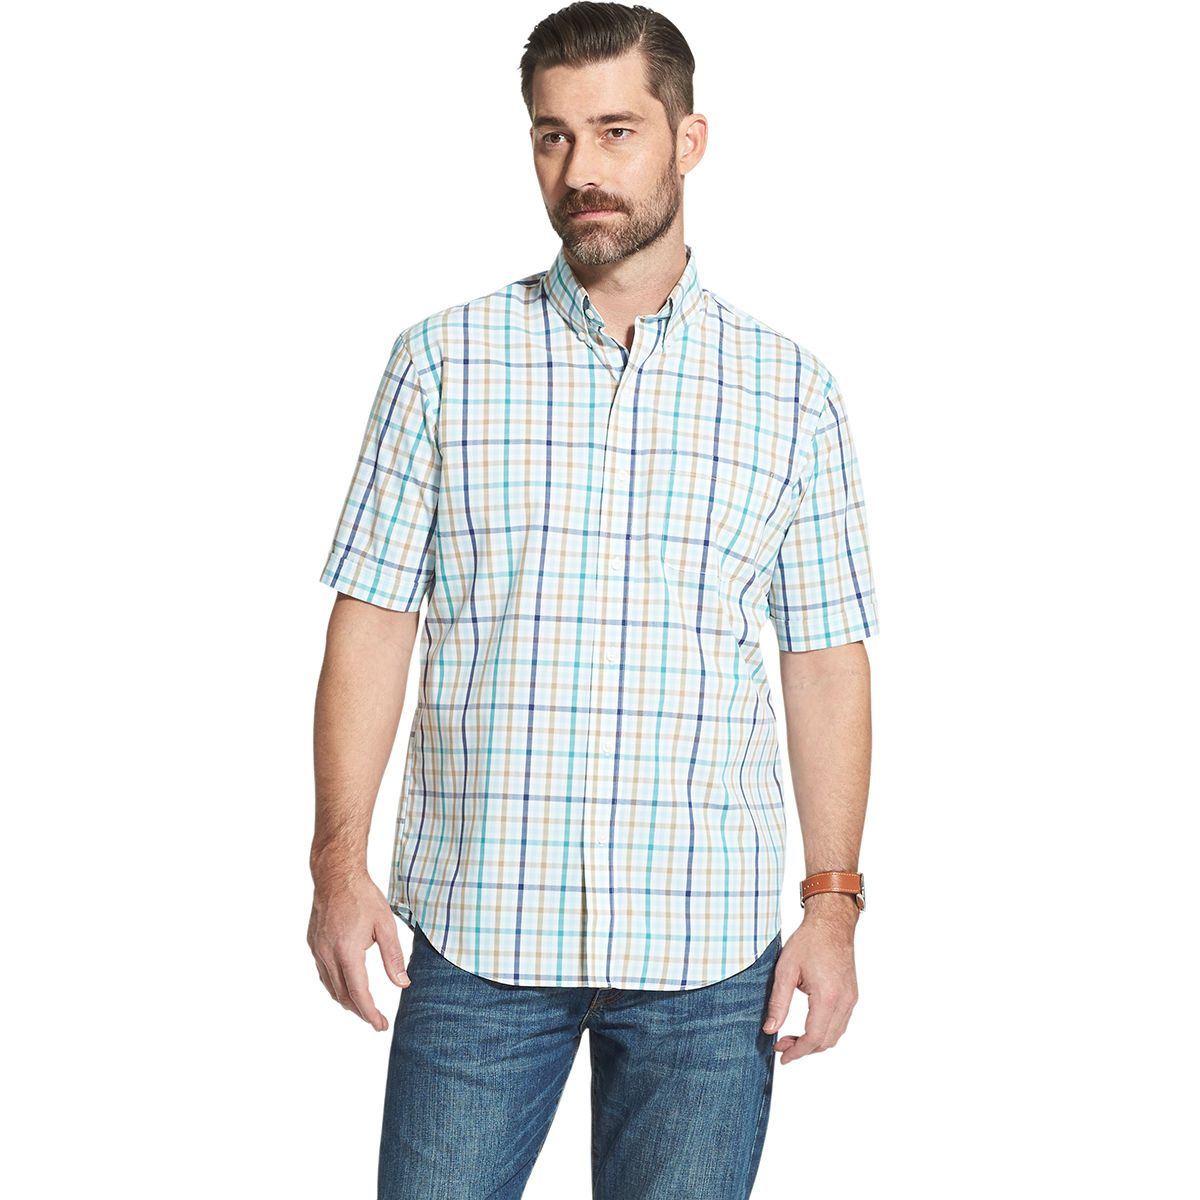 Arrow Men's Hamilton Short Sleeve Button Down Shirt - Blue, L